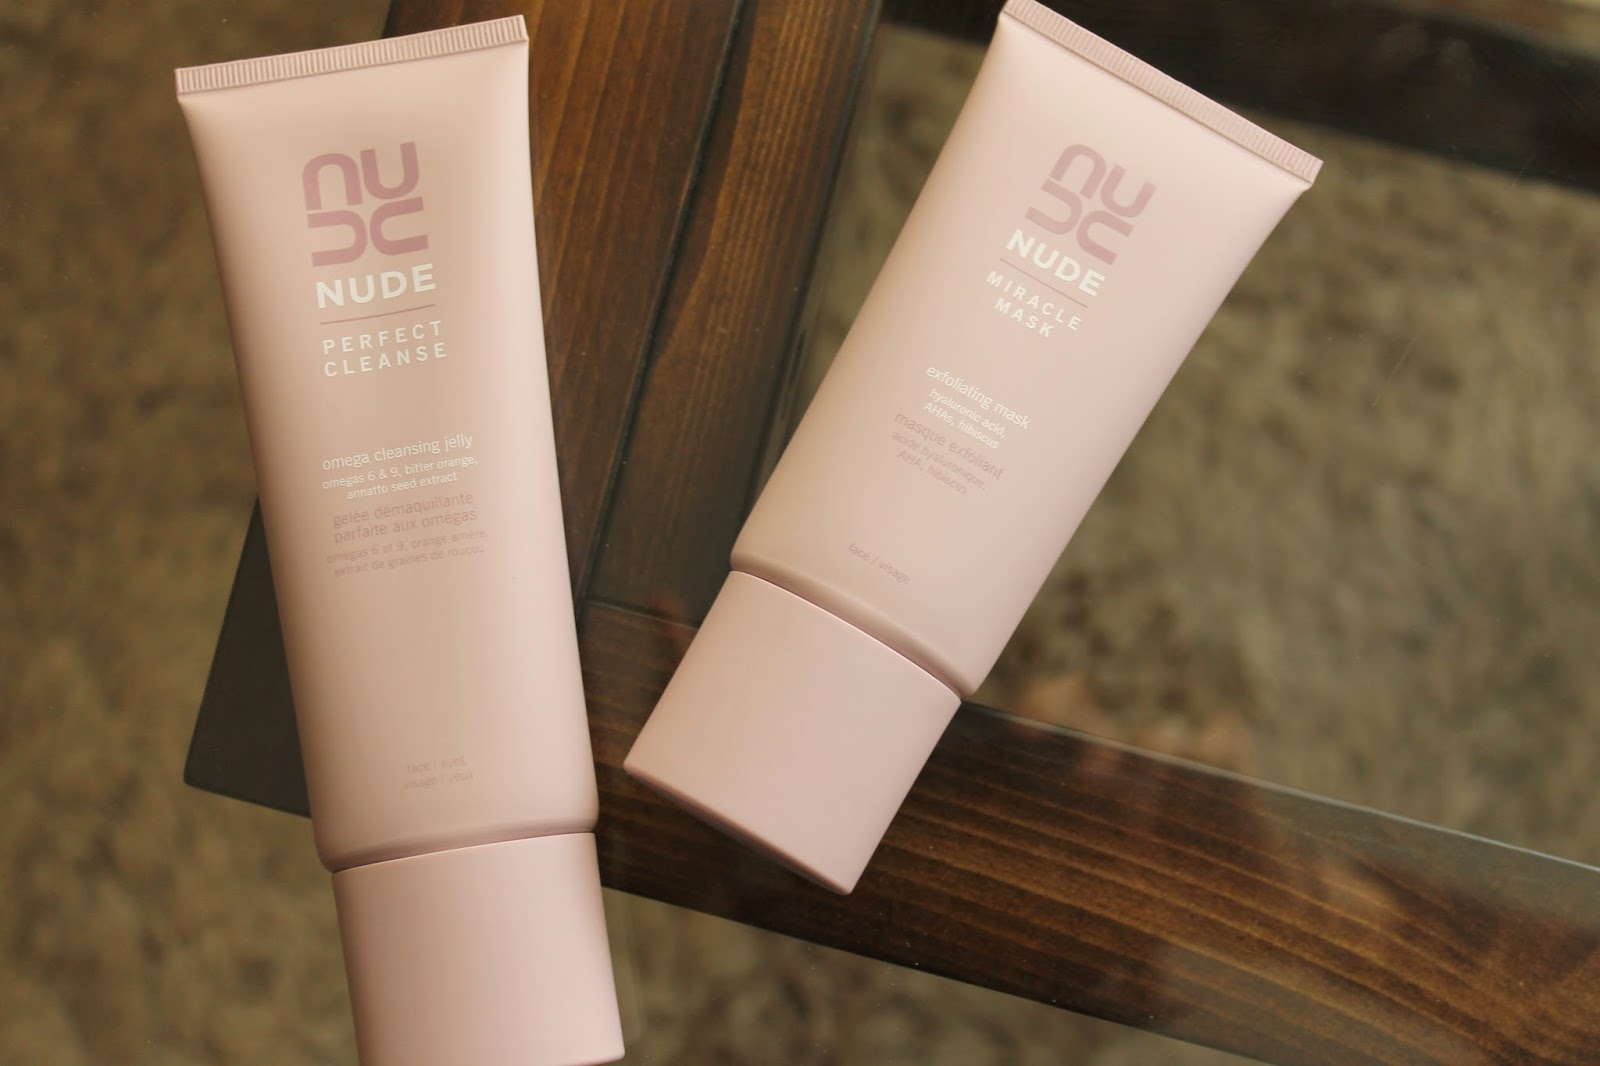 TWO STAR PRODUCTS FROM NUDE SKINCARE